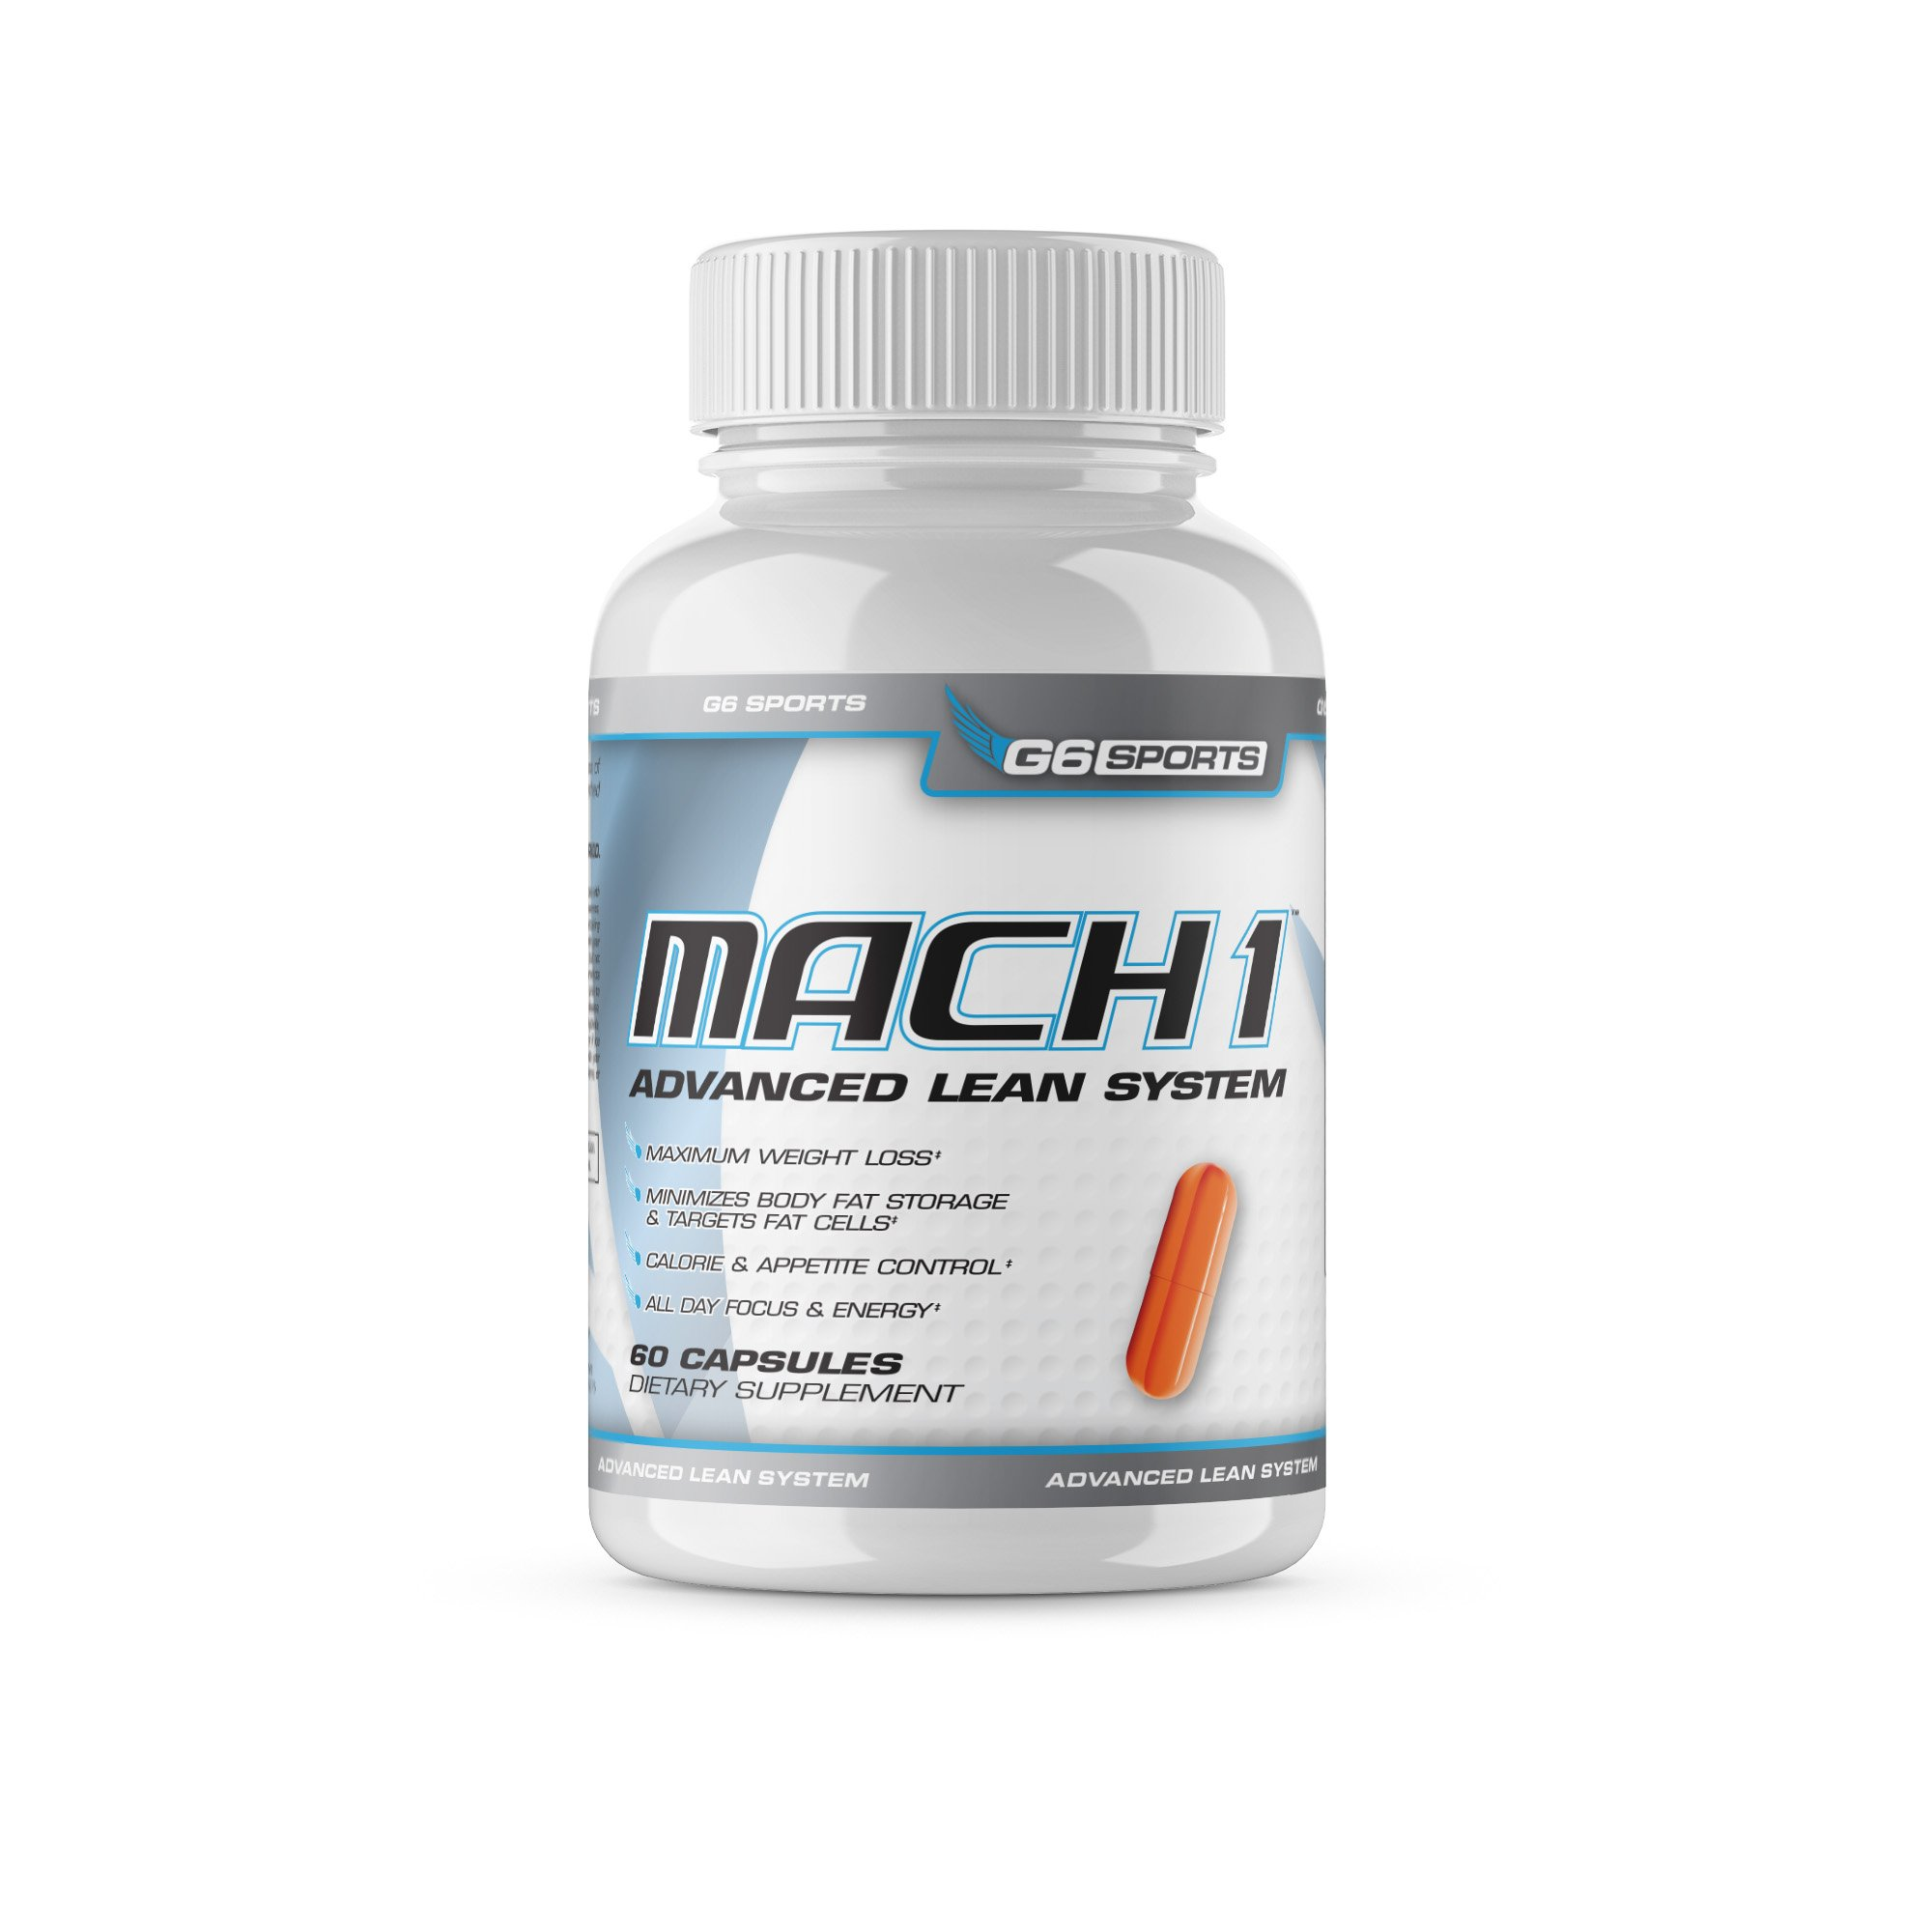 G6 Sports Nutrition Mach 1 Advanced Lean System (Patented Ingredients, Target Fat Cells, No Crash or Jitters) - 60 Capsules